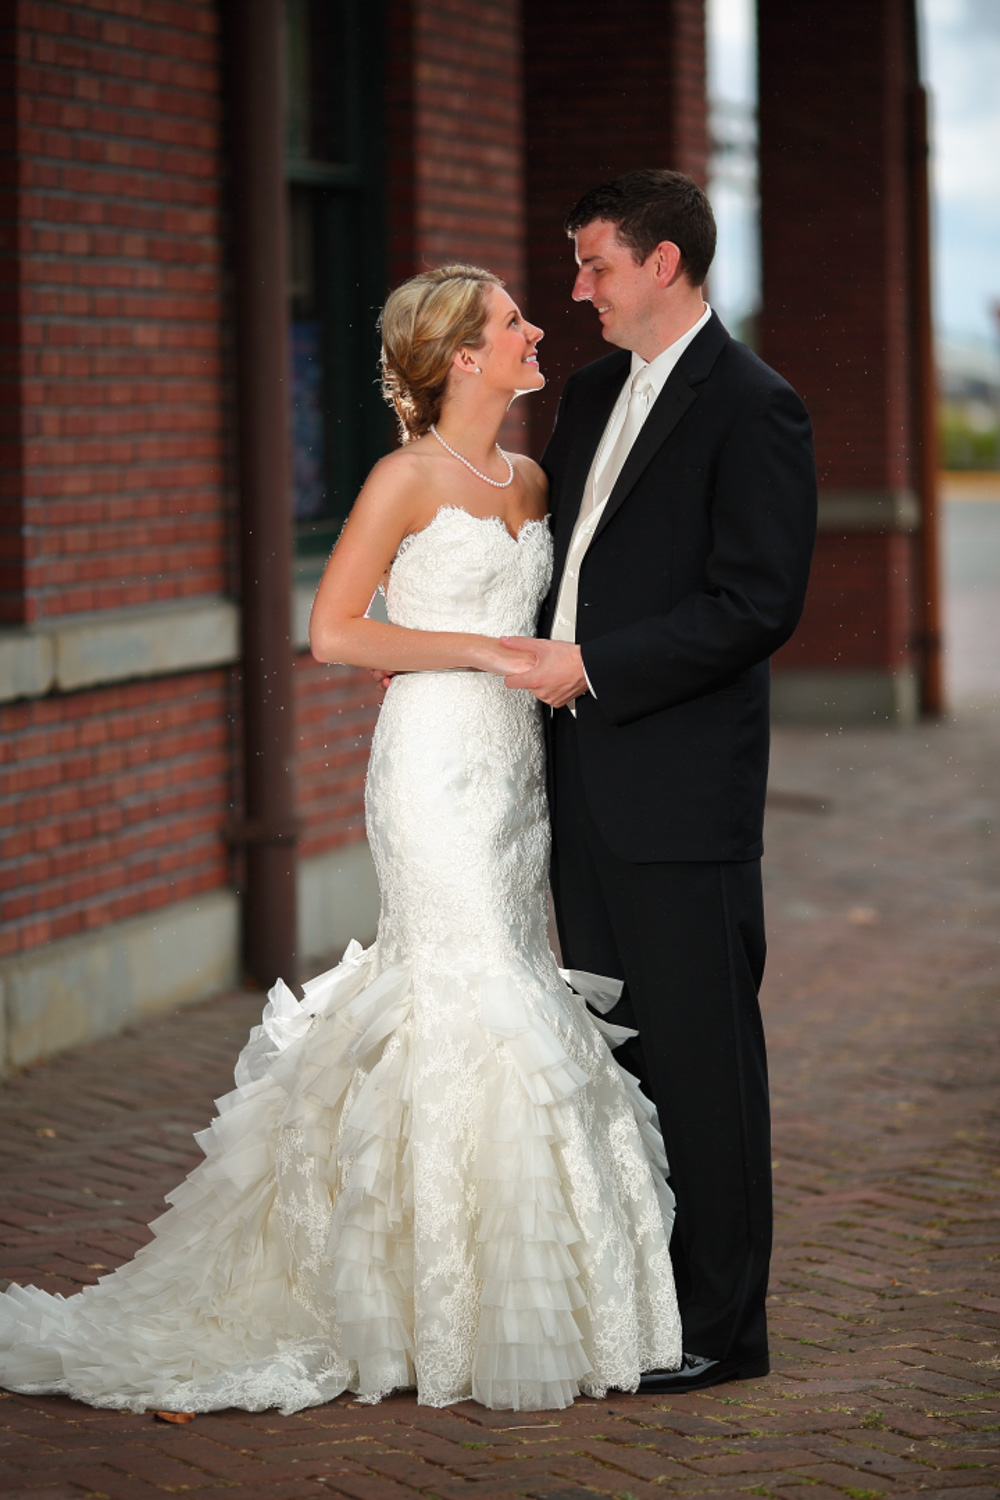 Wedding Photos Centrillia Washington09.jpg